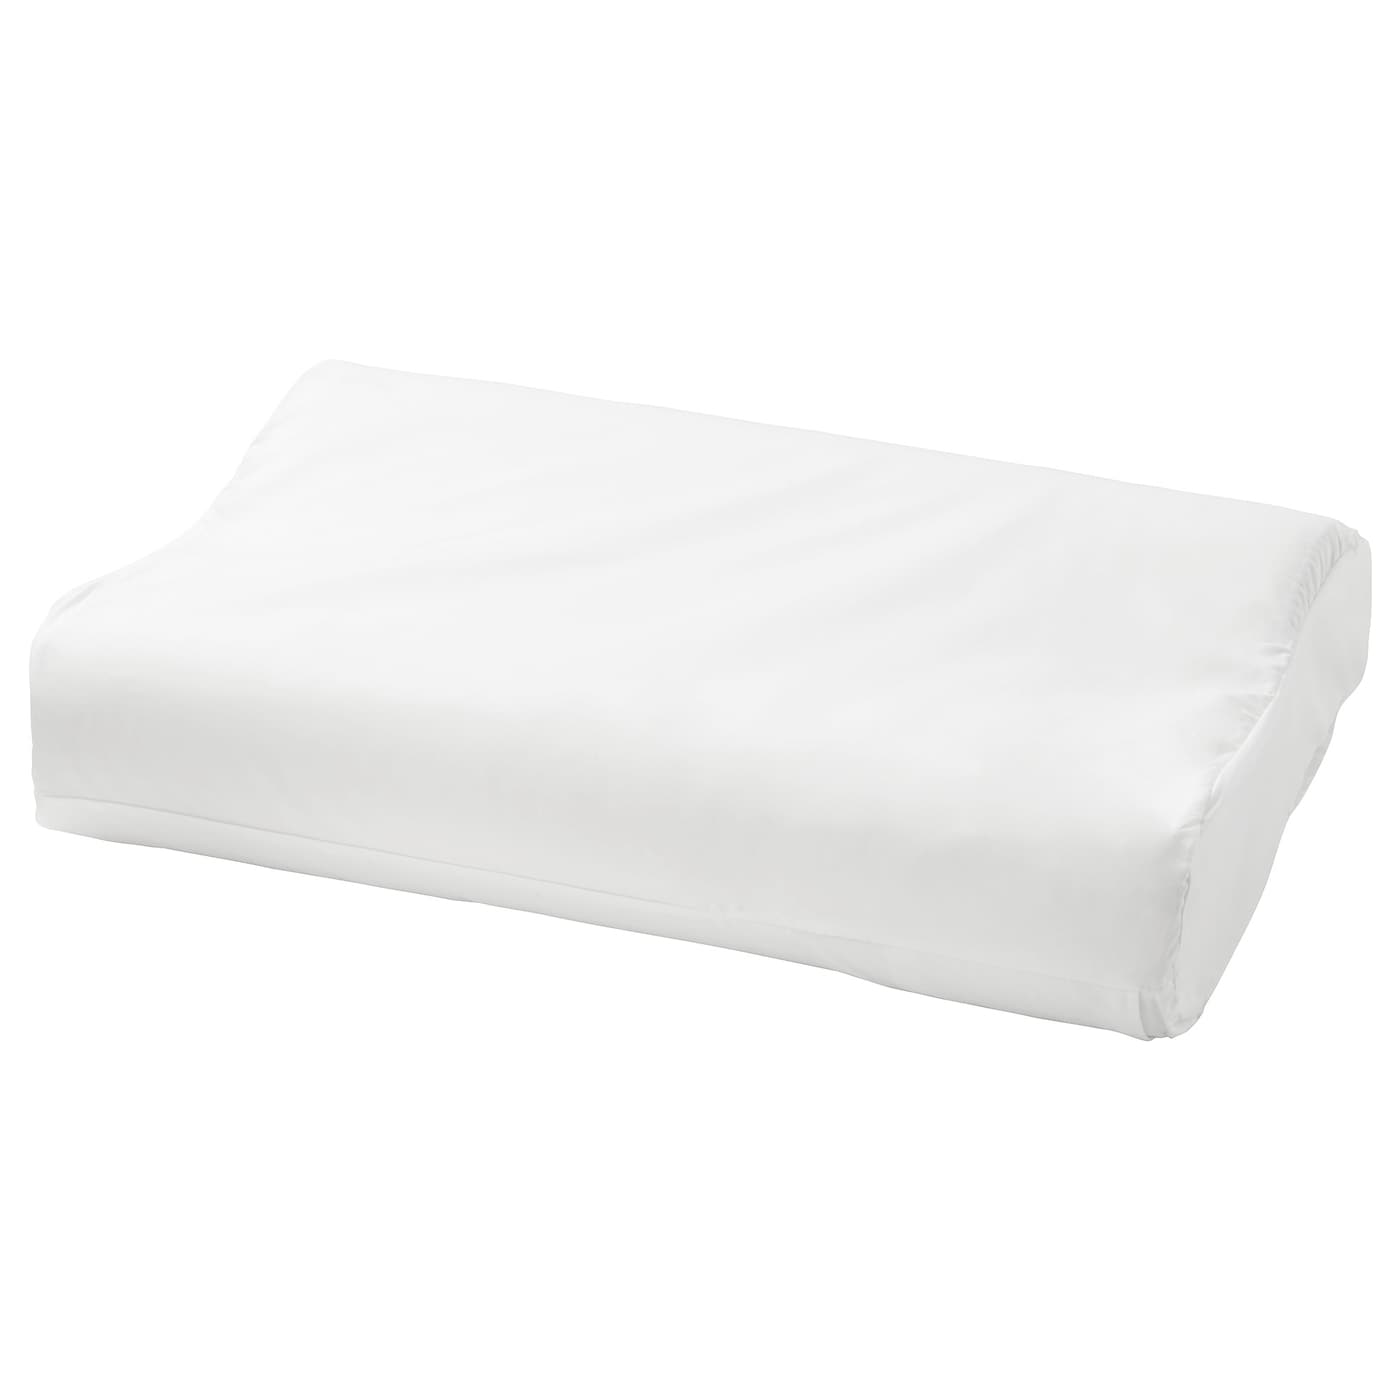 IKEA RÖLLEKA pillowcase for memory foam pillow